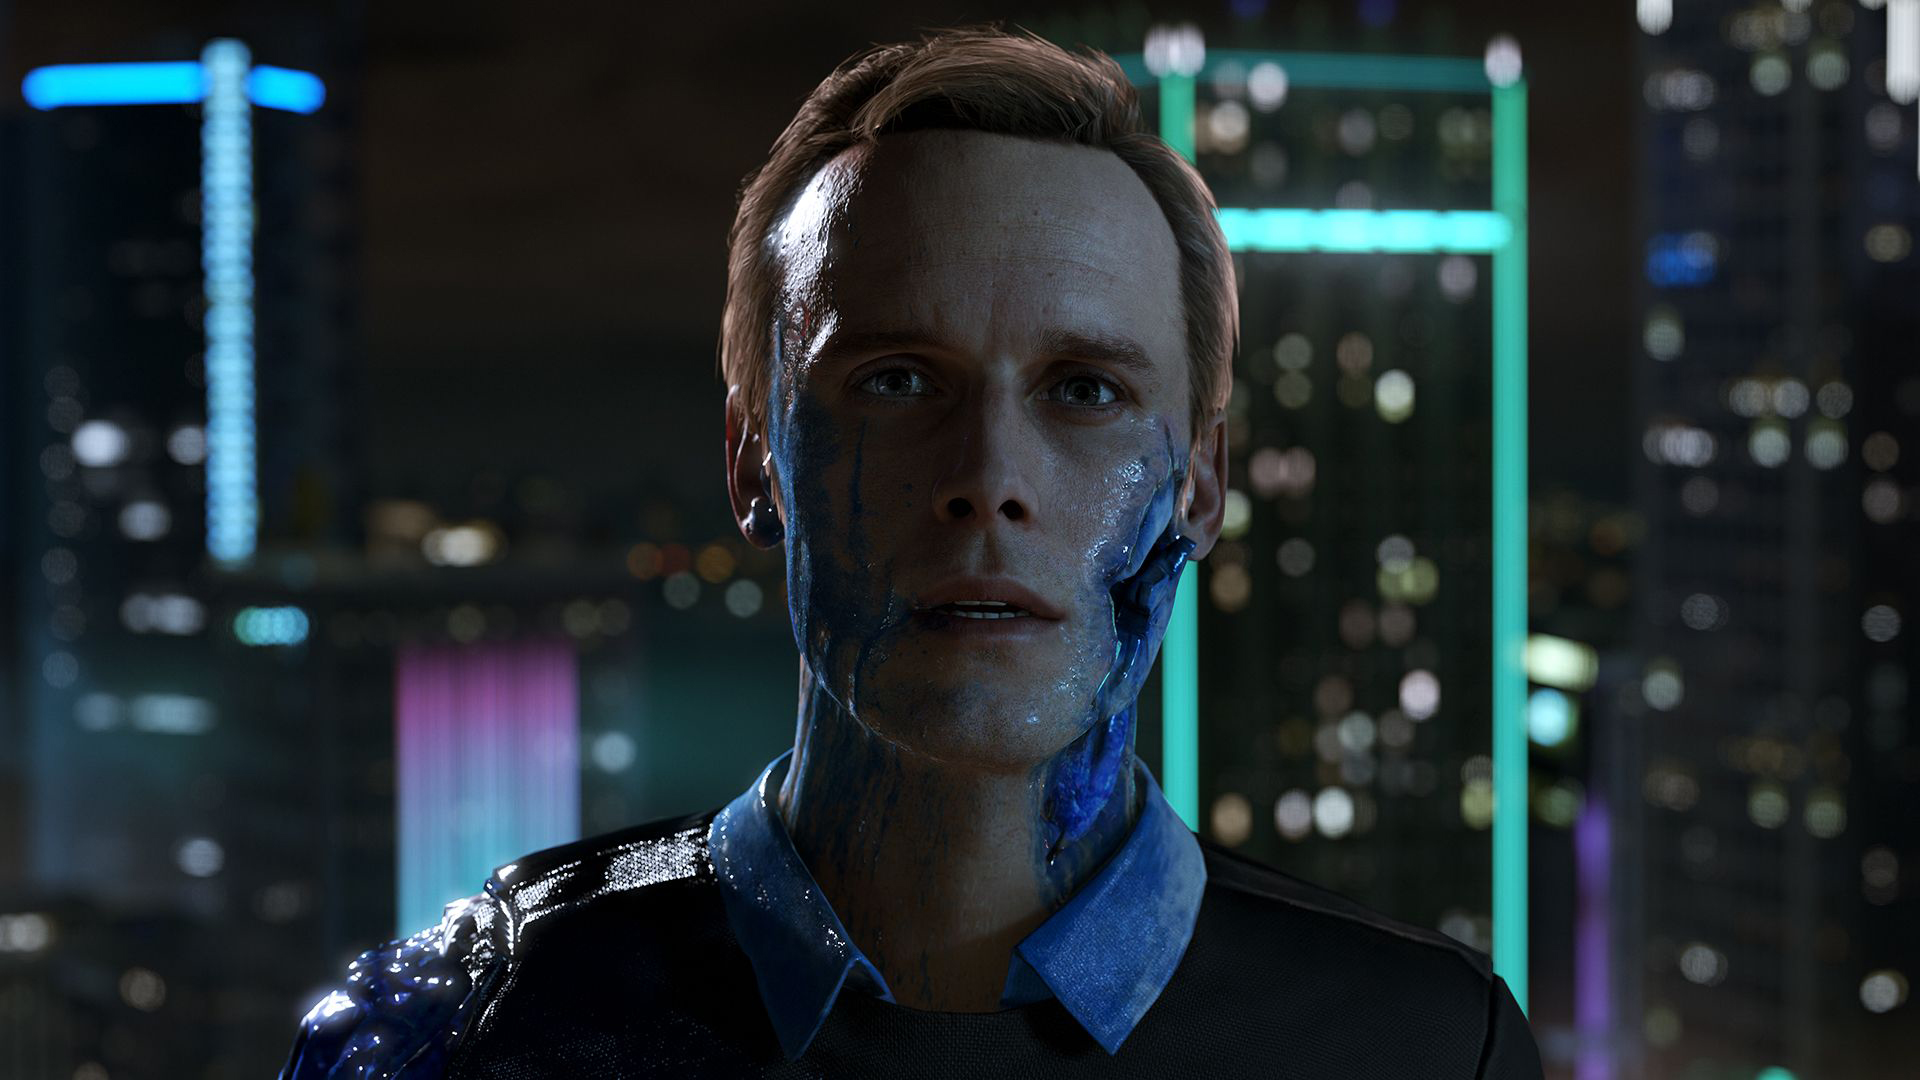 2 миллиона проданных копий Detroit: Become Human